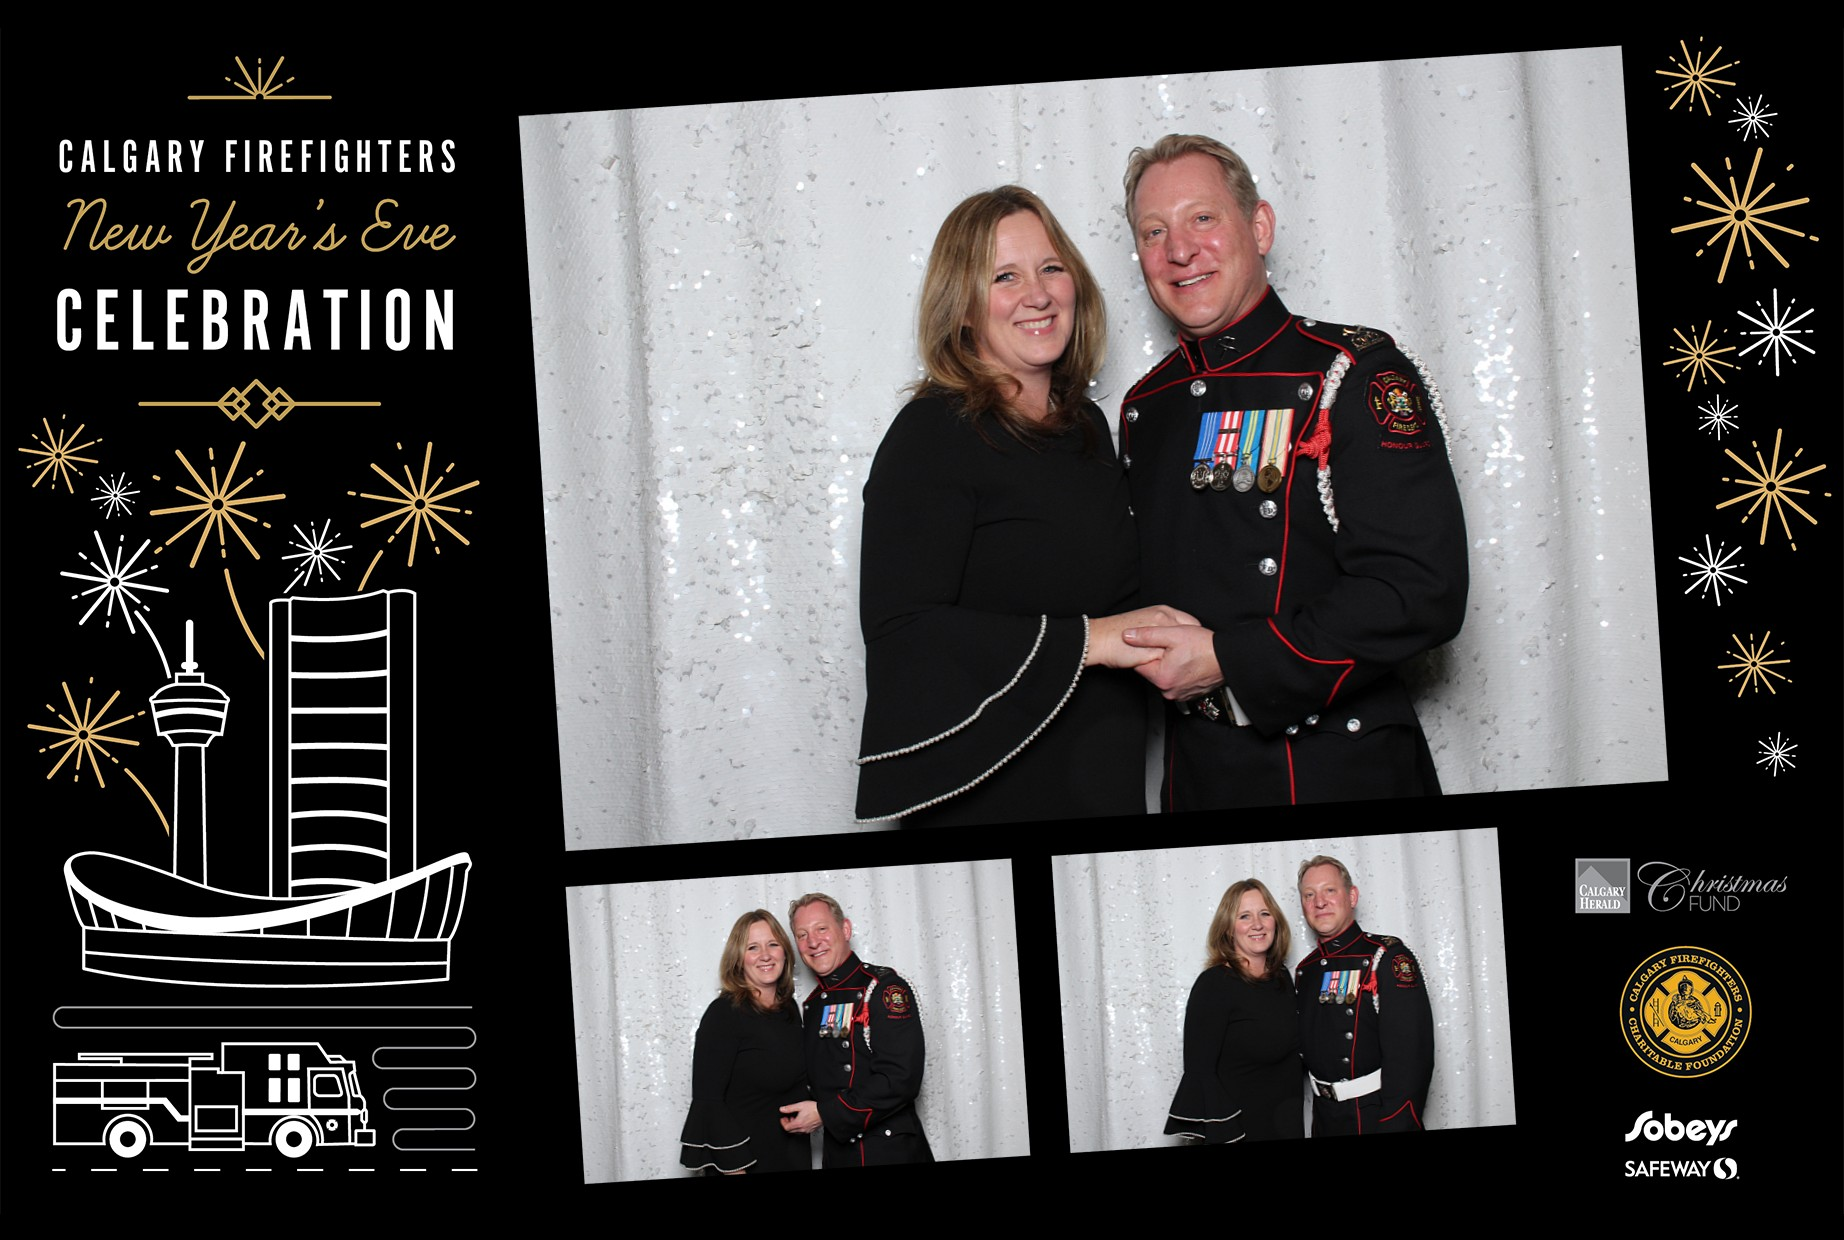 CalgaryFirefightersNYE-0203-PRINT.jpg